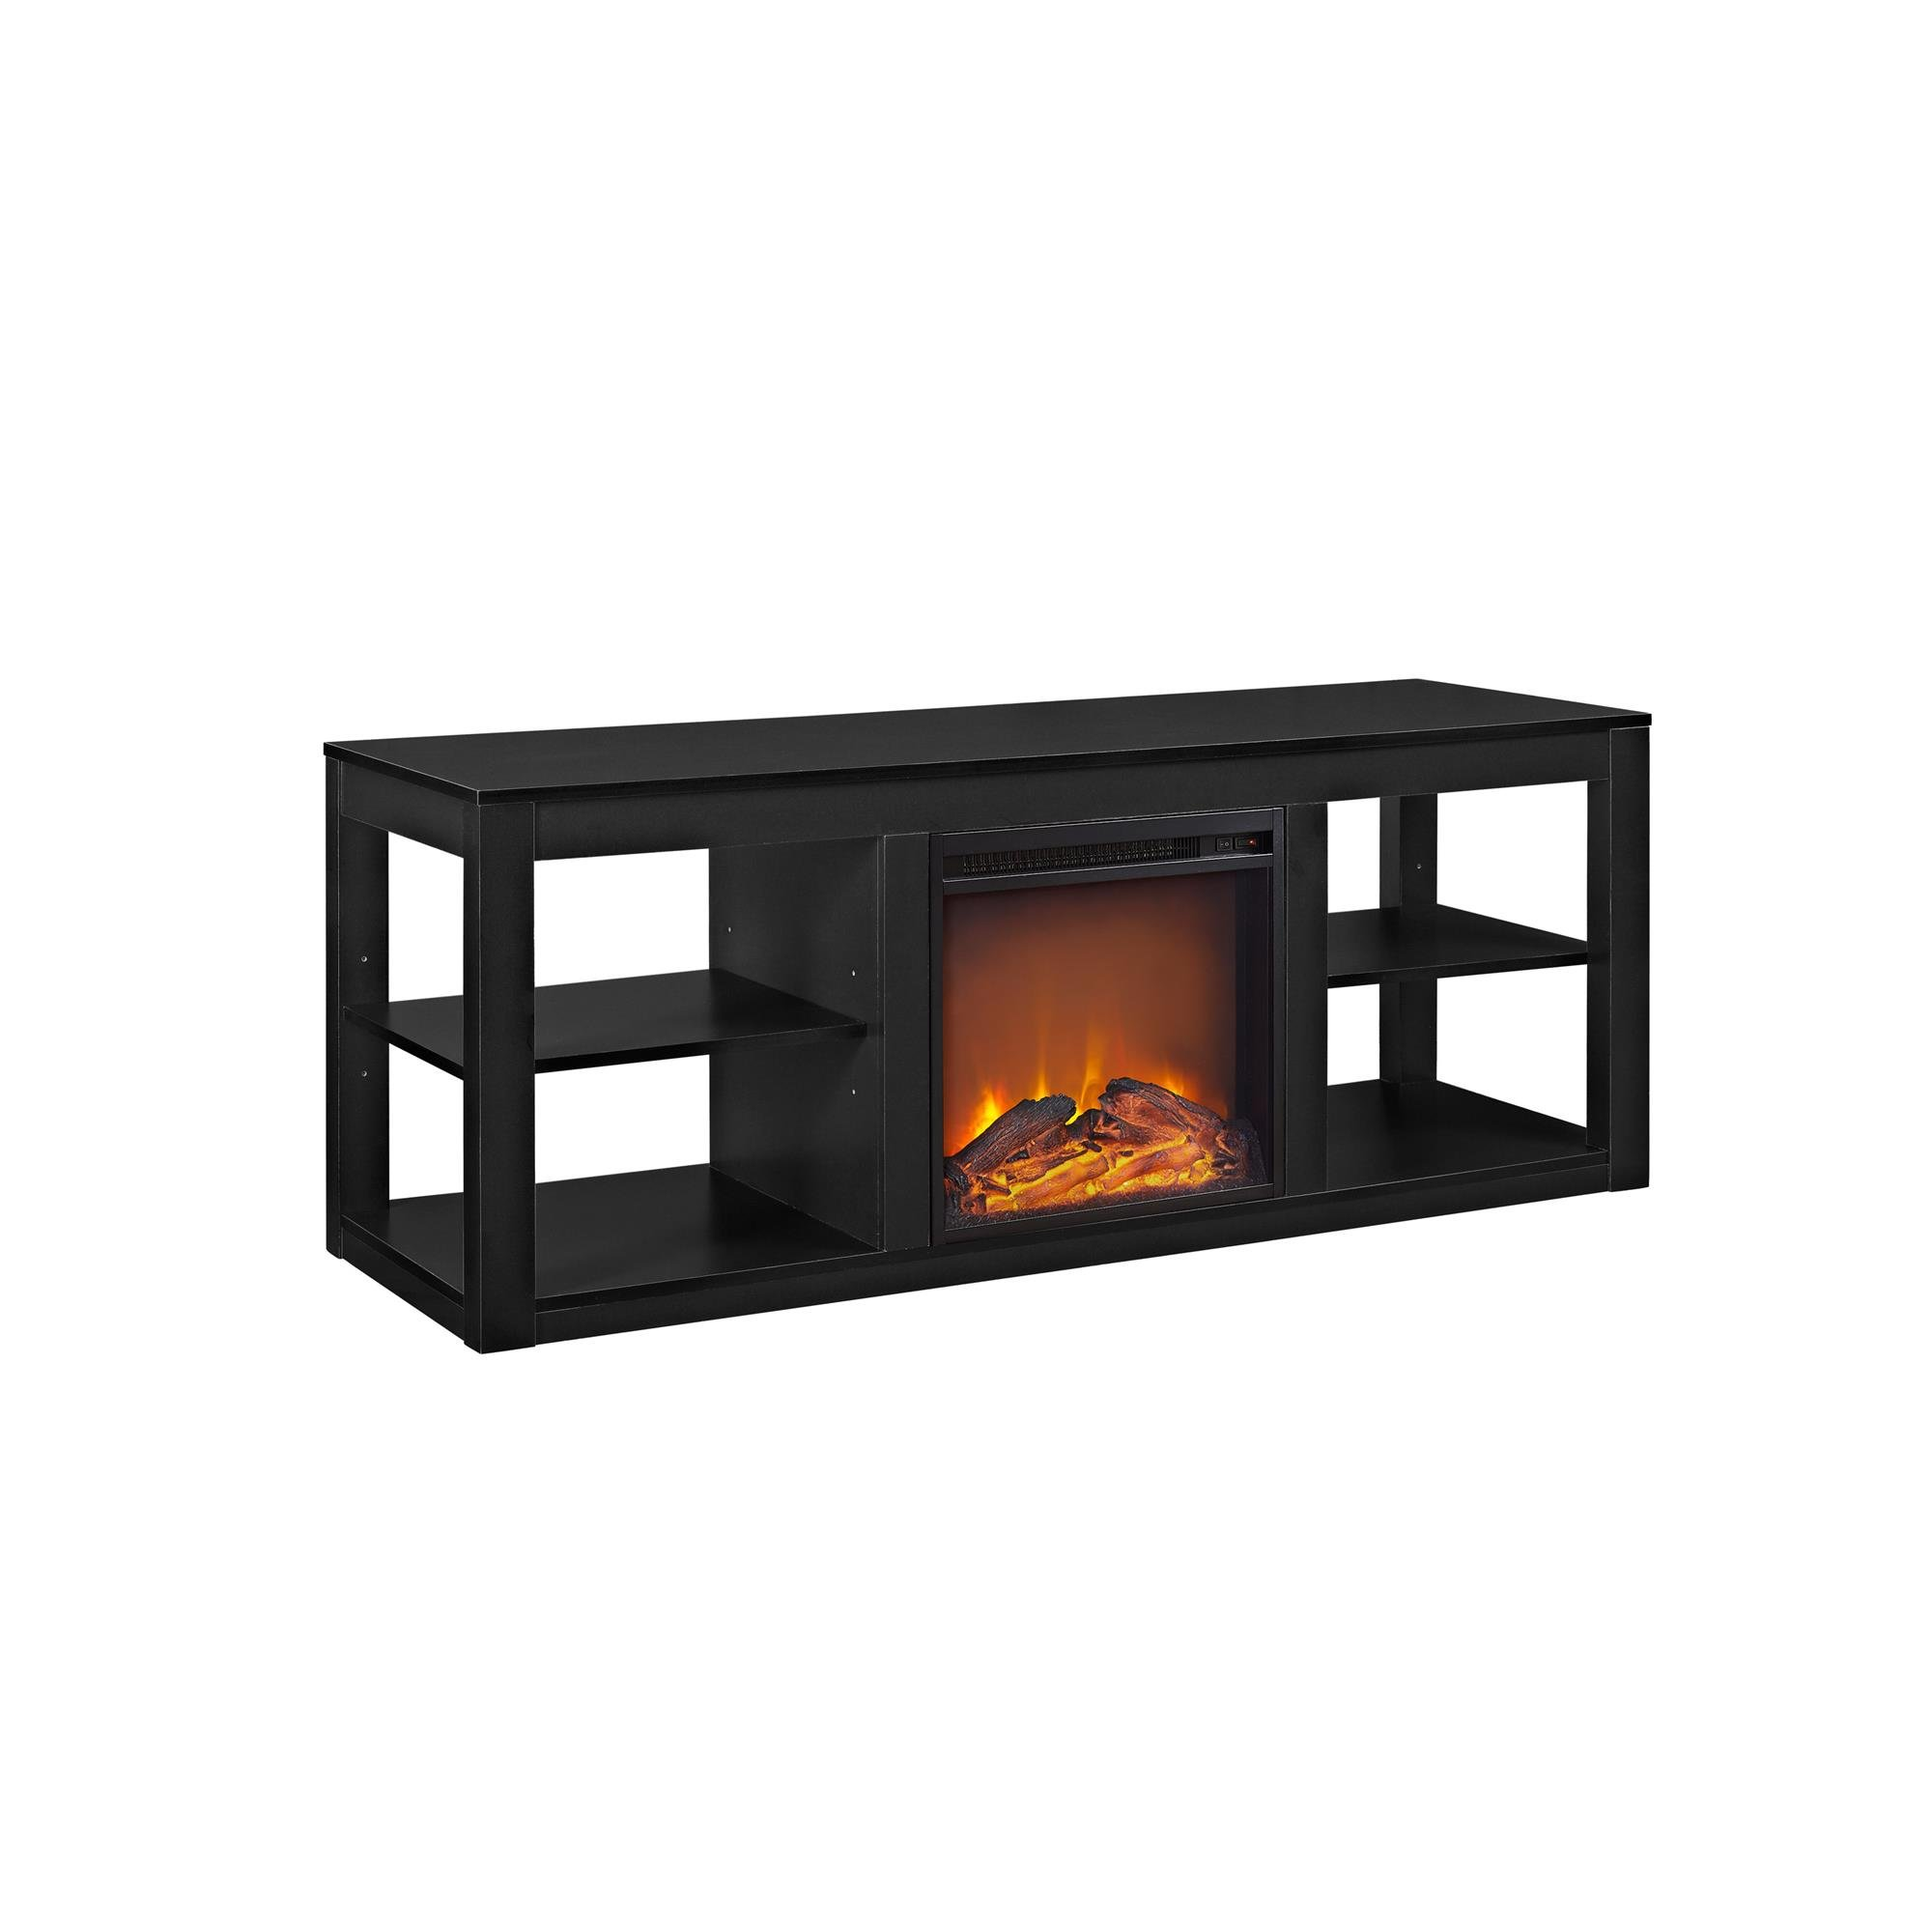 Ameriwood Home Parsons Electric Fireplace TV Stand for TVs up to 65'', Black by Ameriwood Home